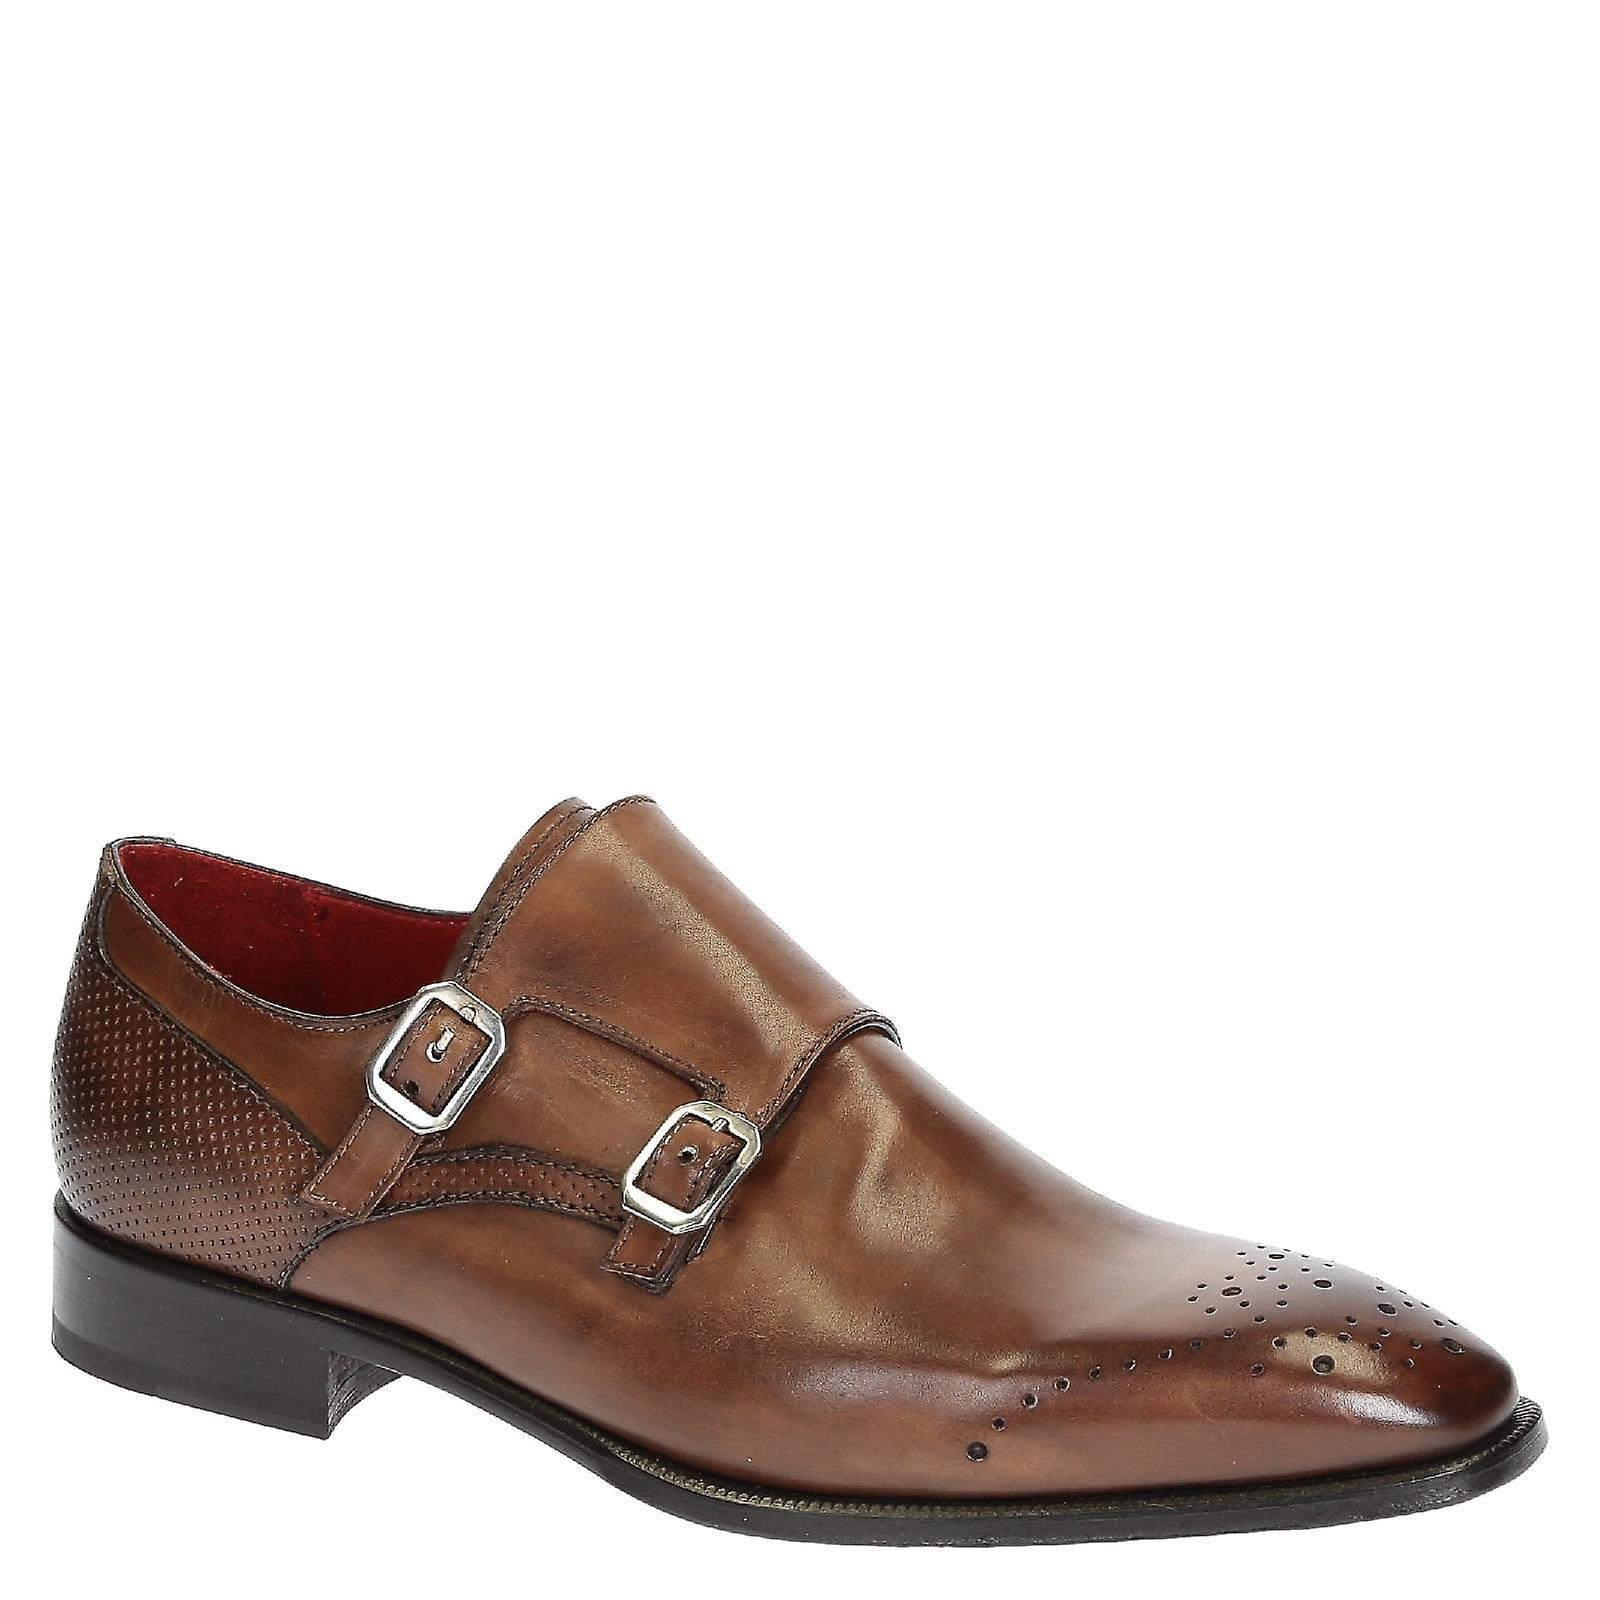 Handmade strap men's double monk strap Handmade shoes in brandy color 7cfb20